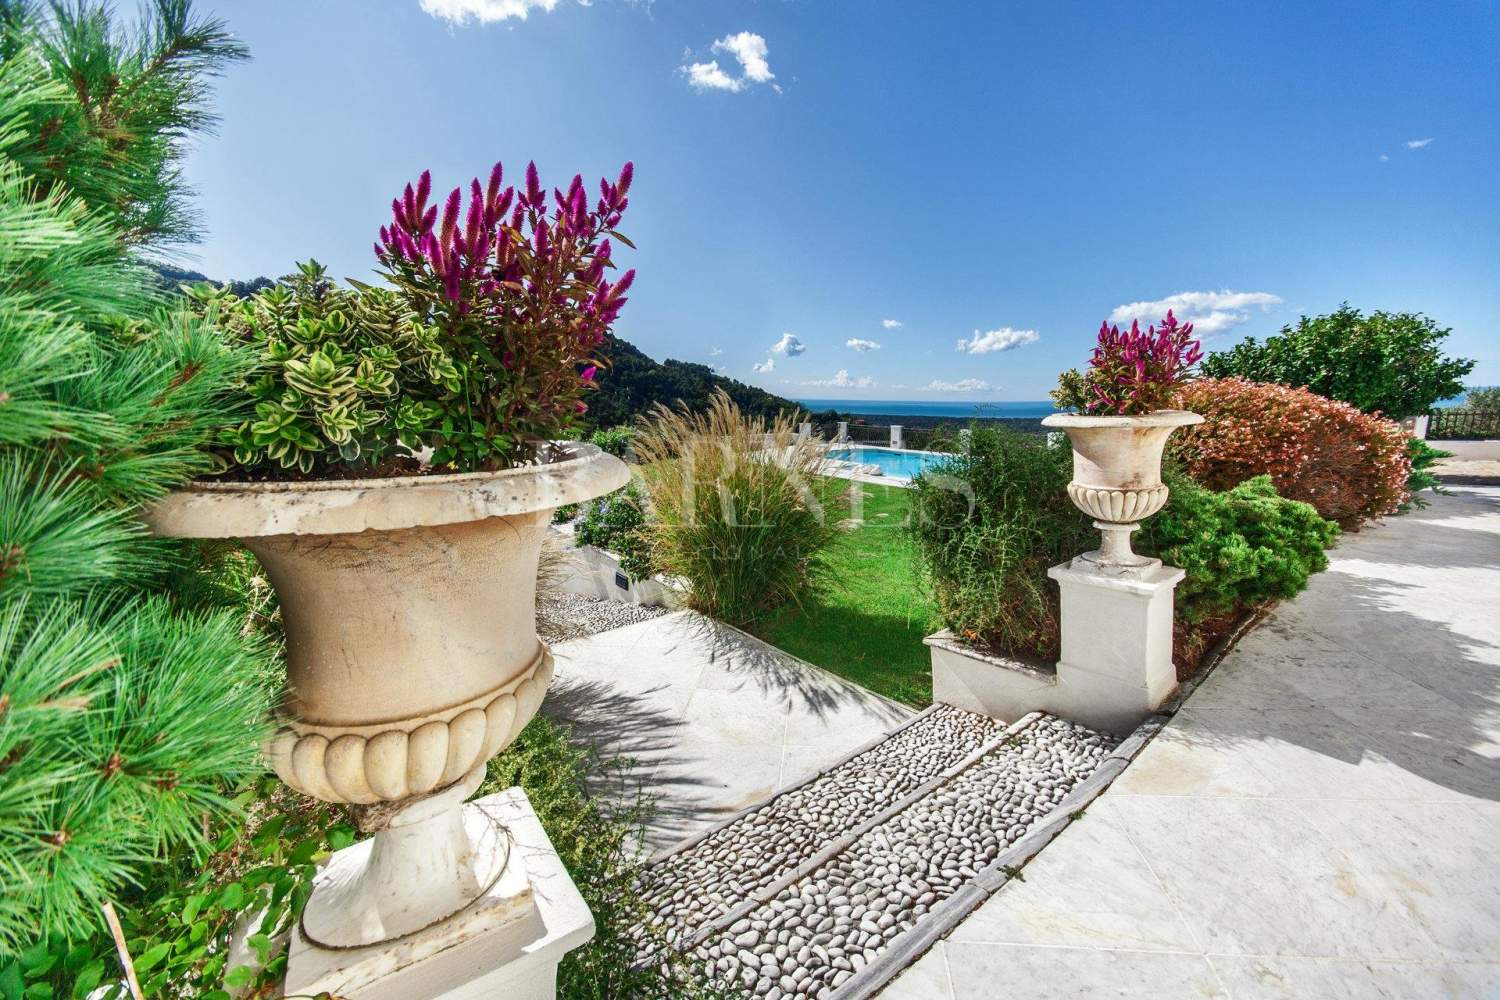 Villa with panoramic views on the sea and mountains, swimming pool picture 6